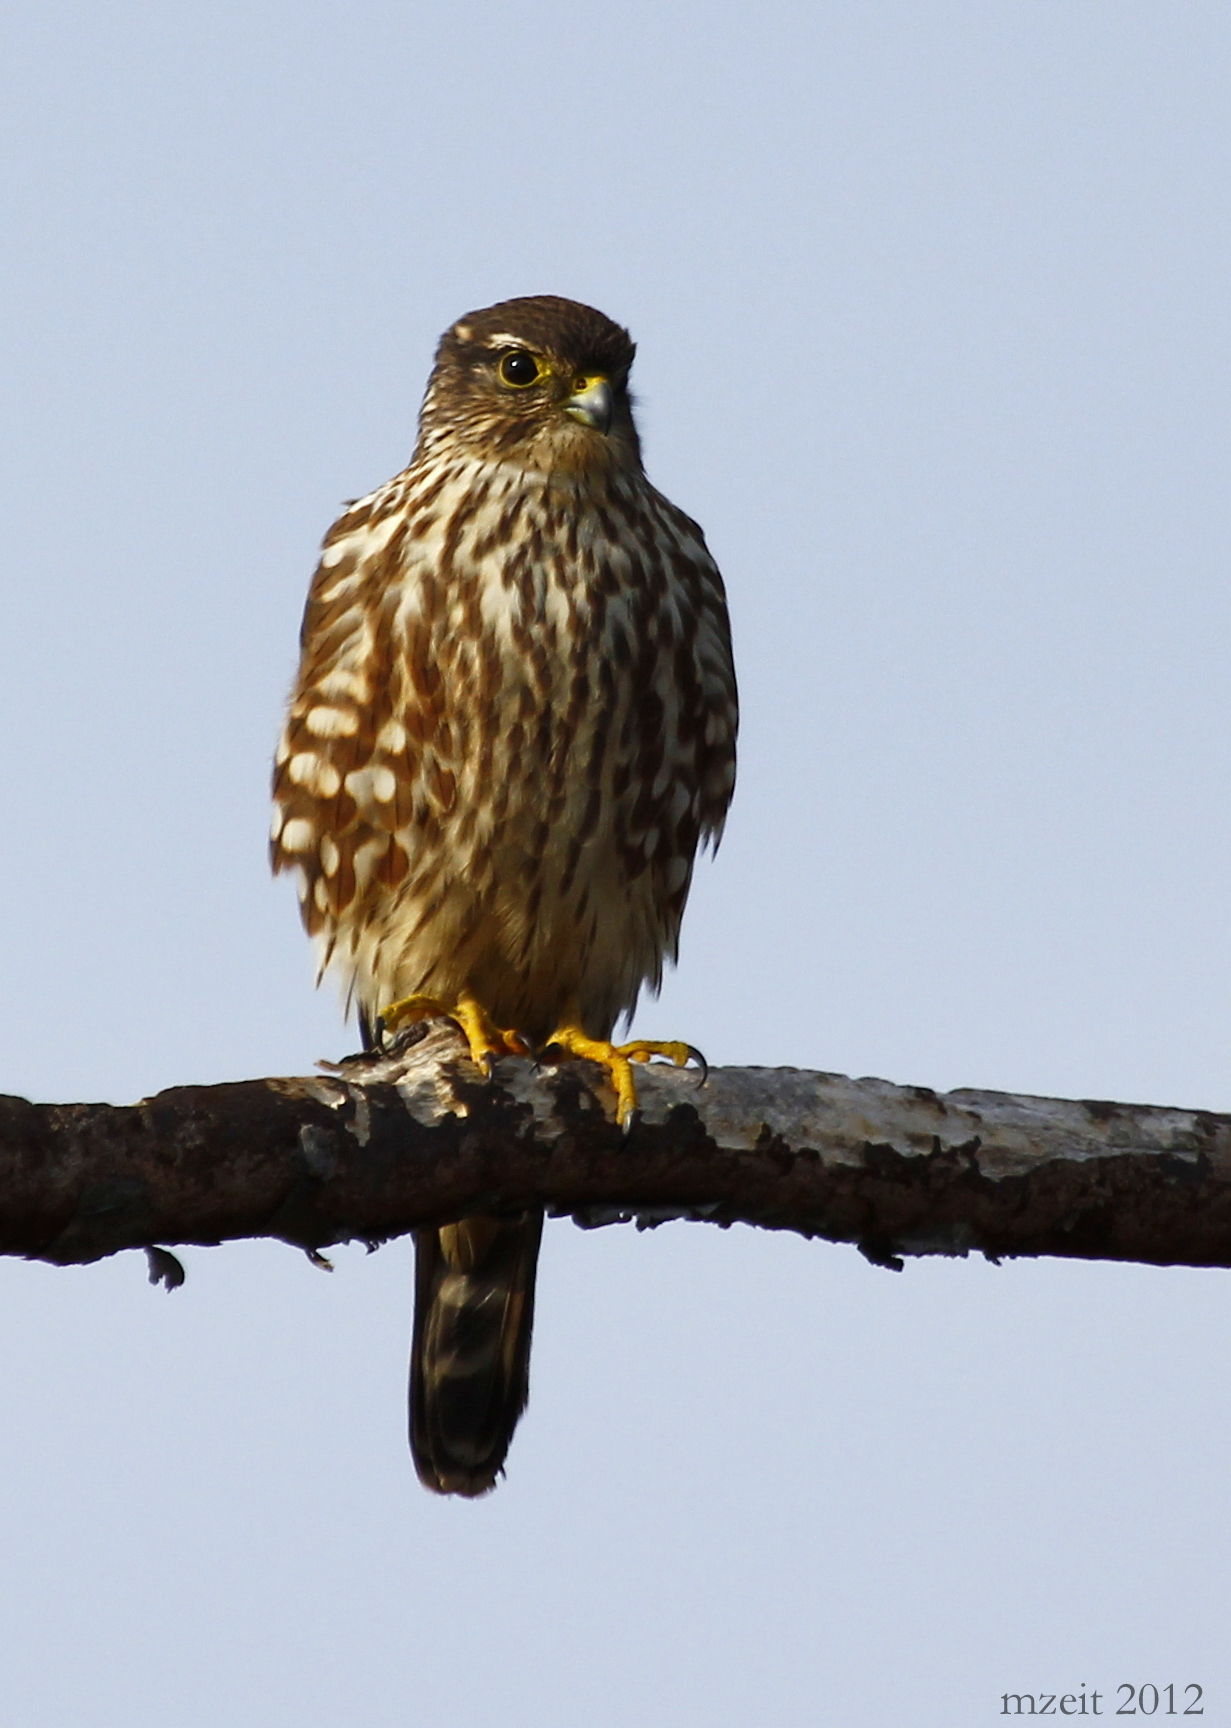 It was so exciting seeing this Merlin - what a beautiful bird!